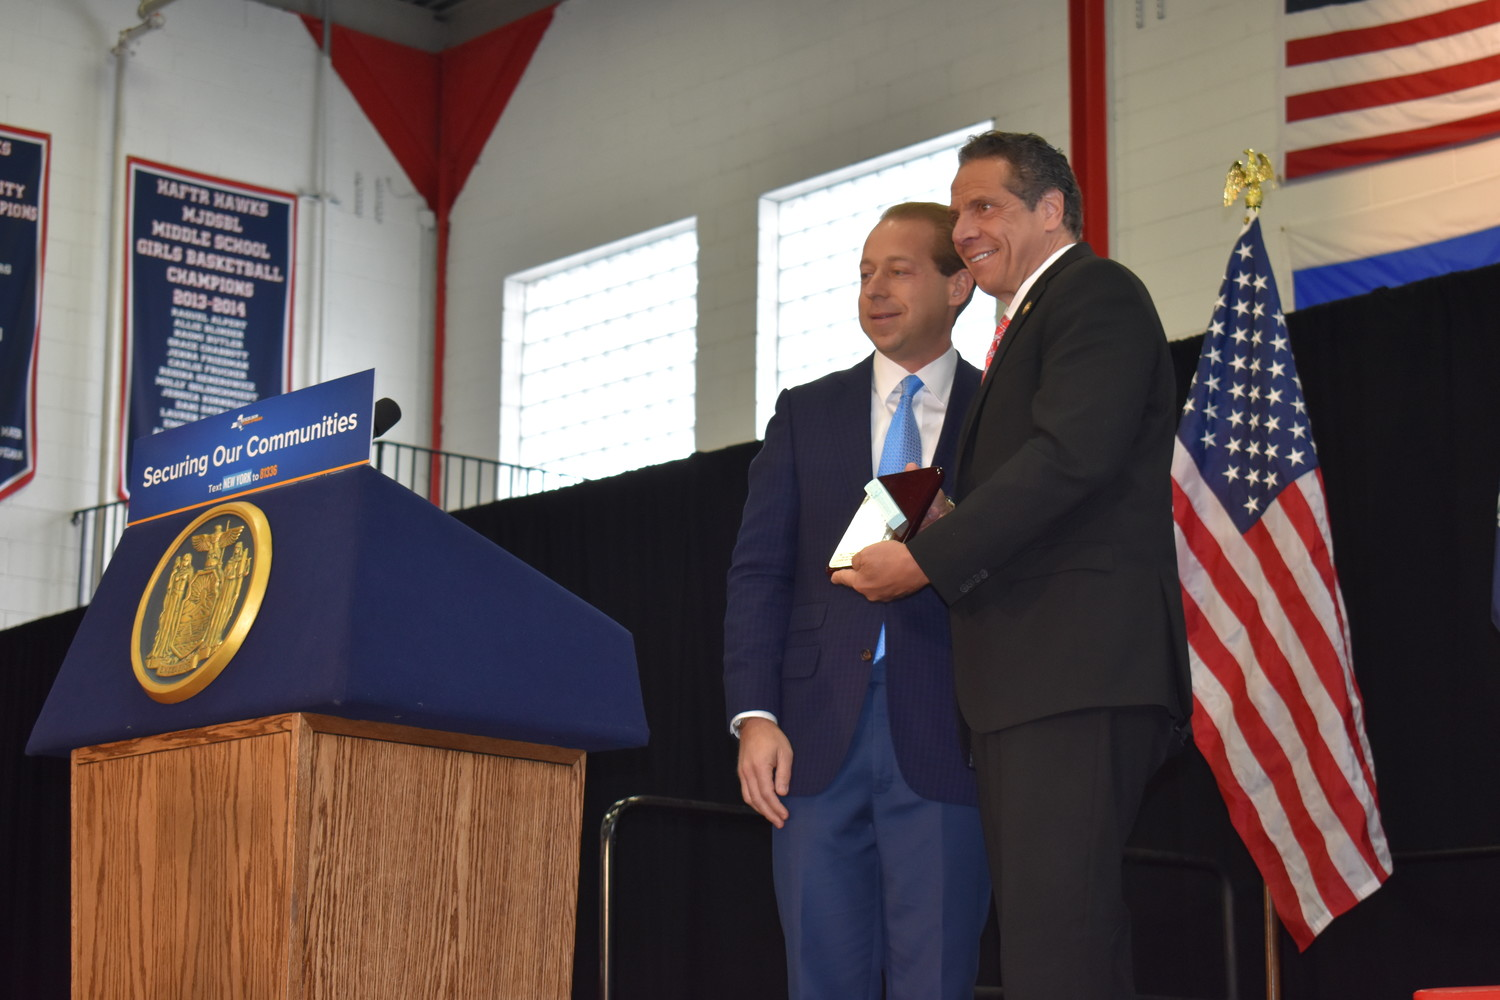 HAFTR's Vice President of Political Affairs, Cal Nathan, presented Gov. Andrew Cuomo with a mezuzah, a verse from the Torah in a decorative container, that students made using a 3D printer in the school's STEM lab.